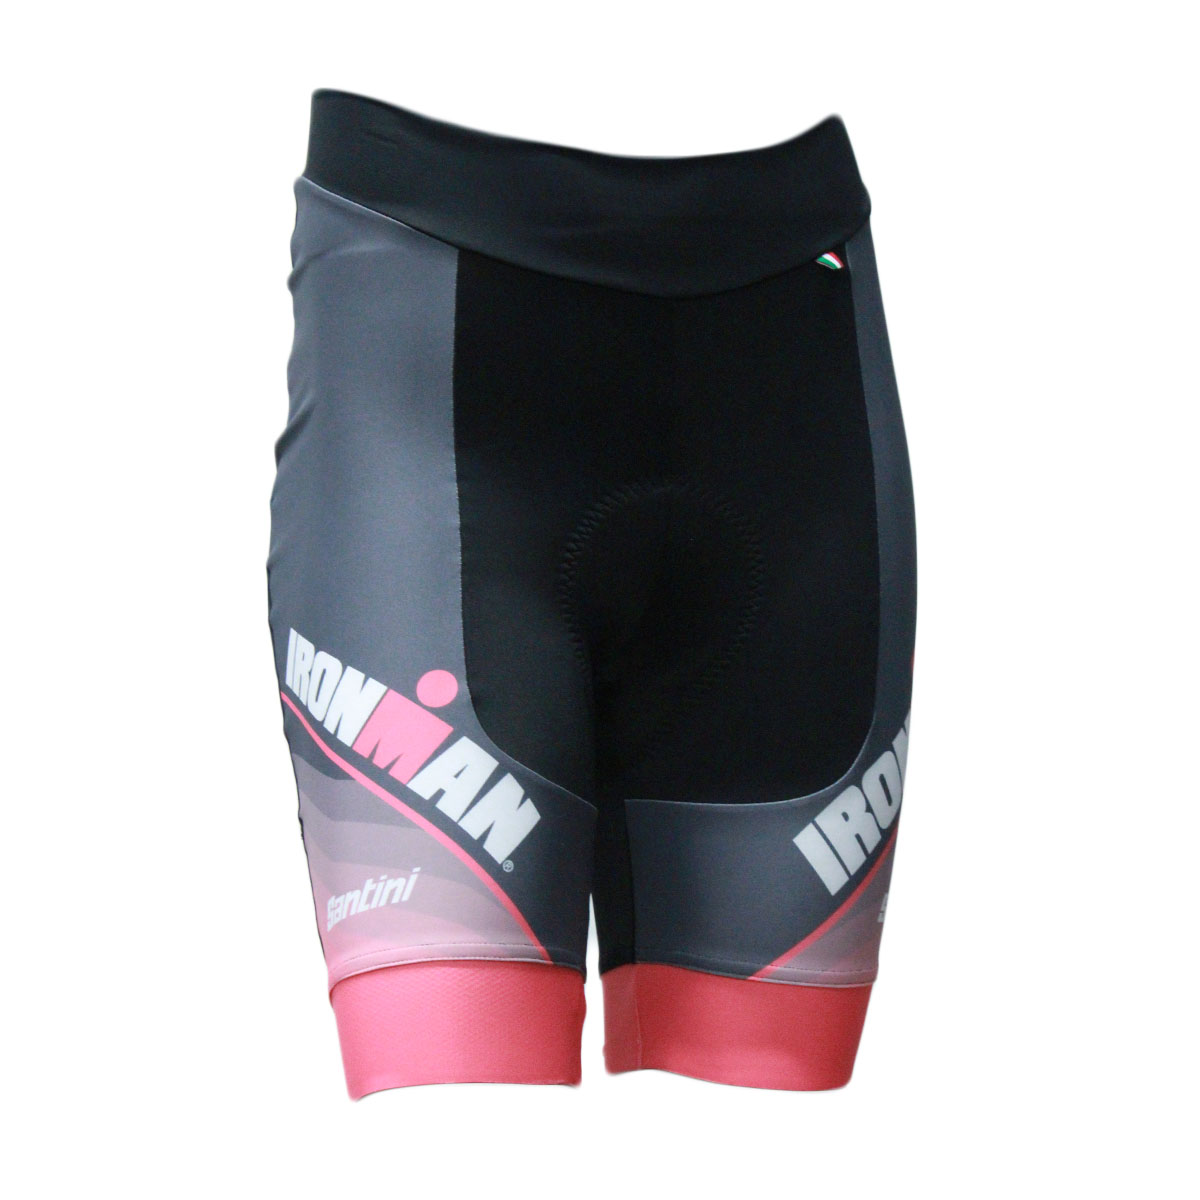 IRONMAN SANTINI WOMEN'S CYCLE SHORT